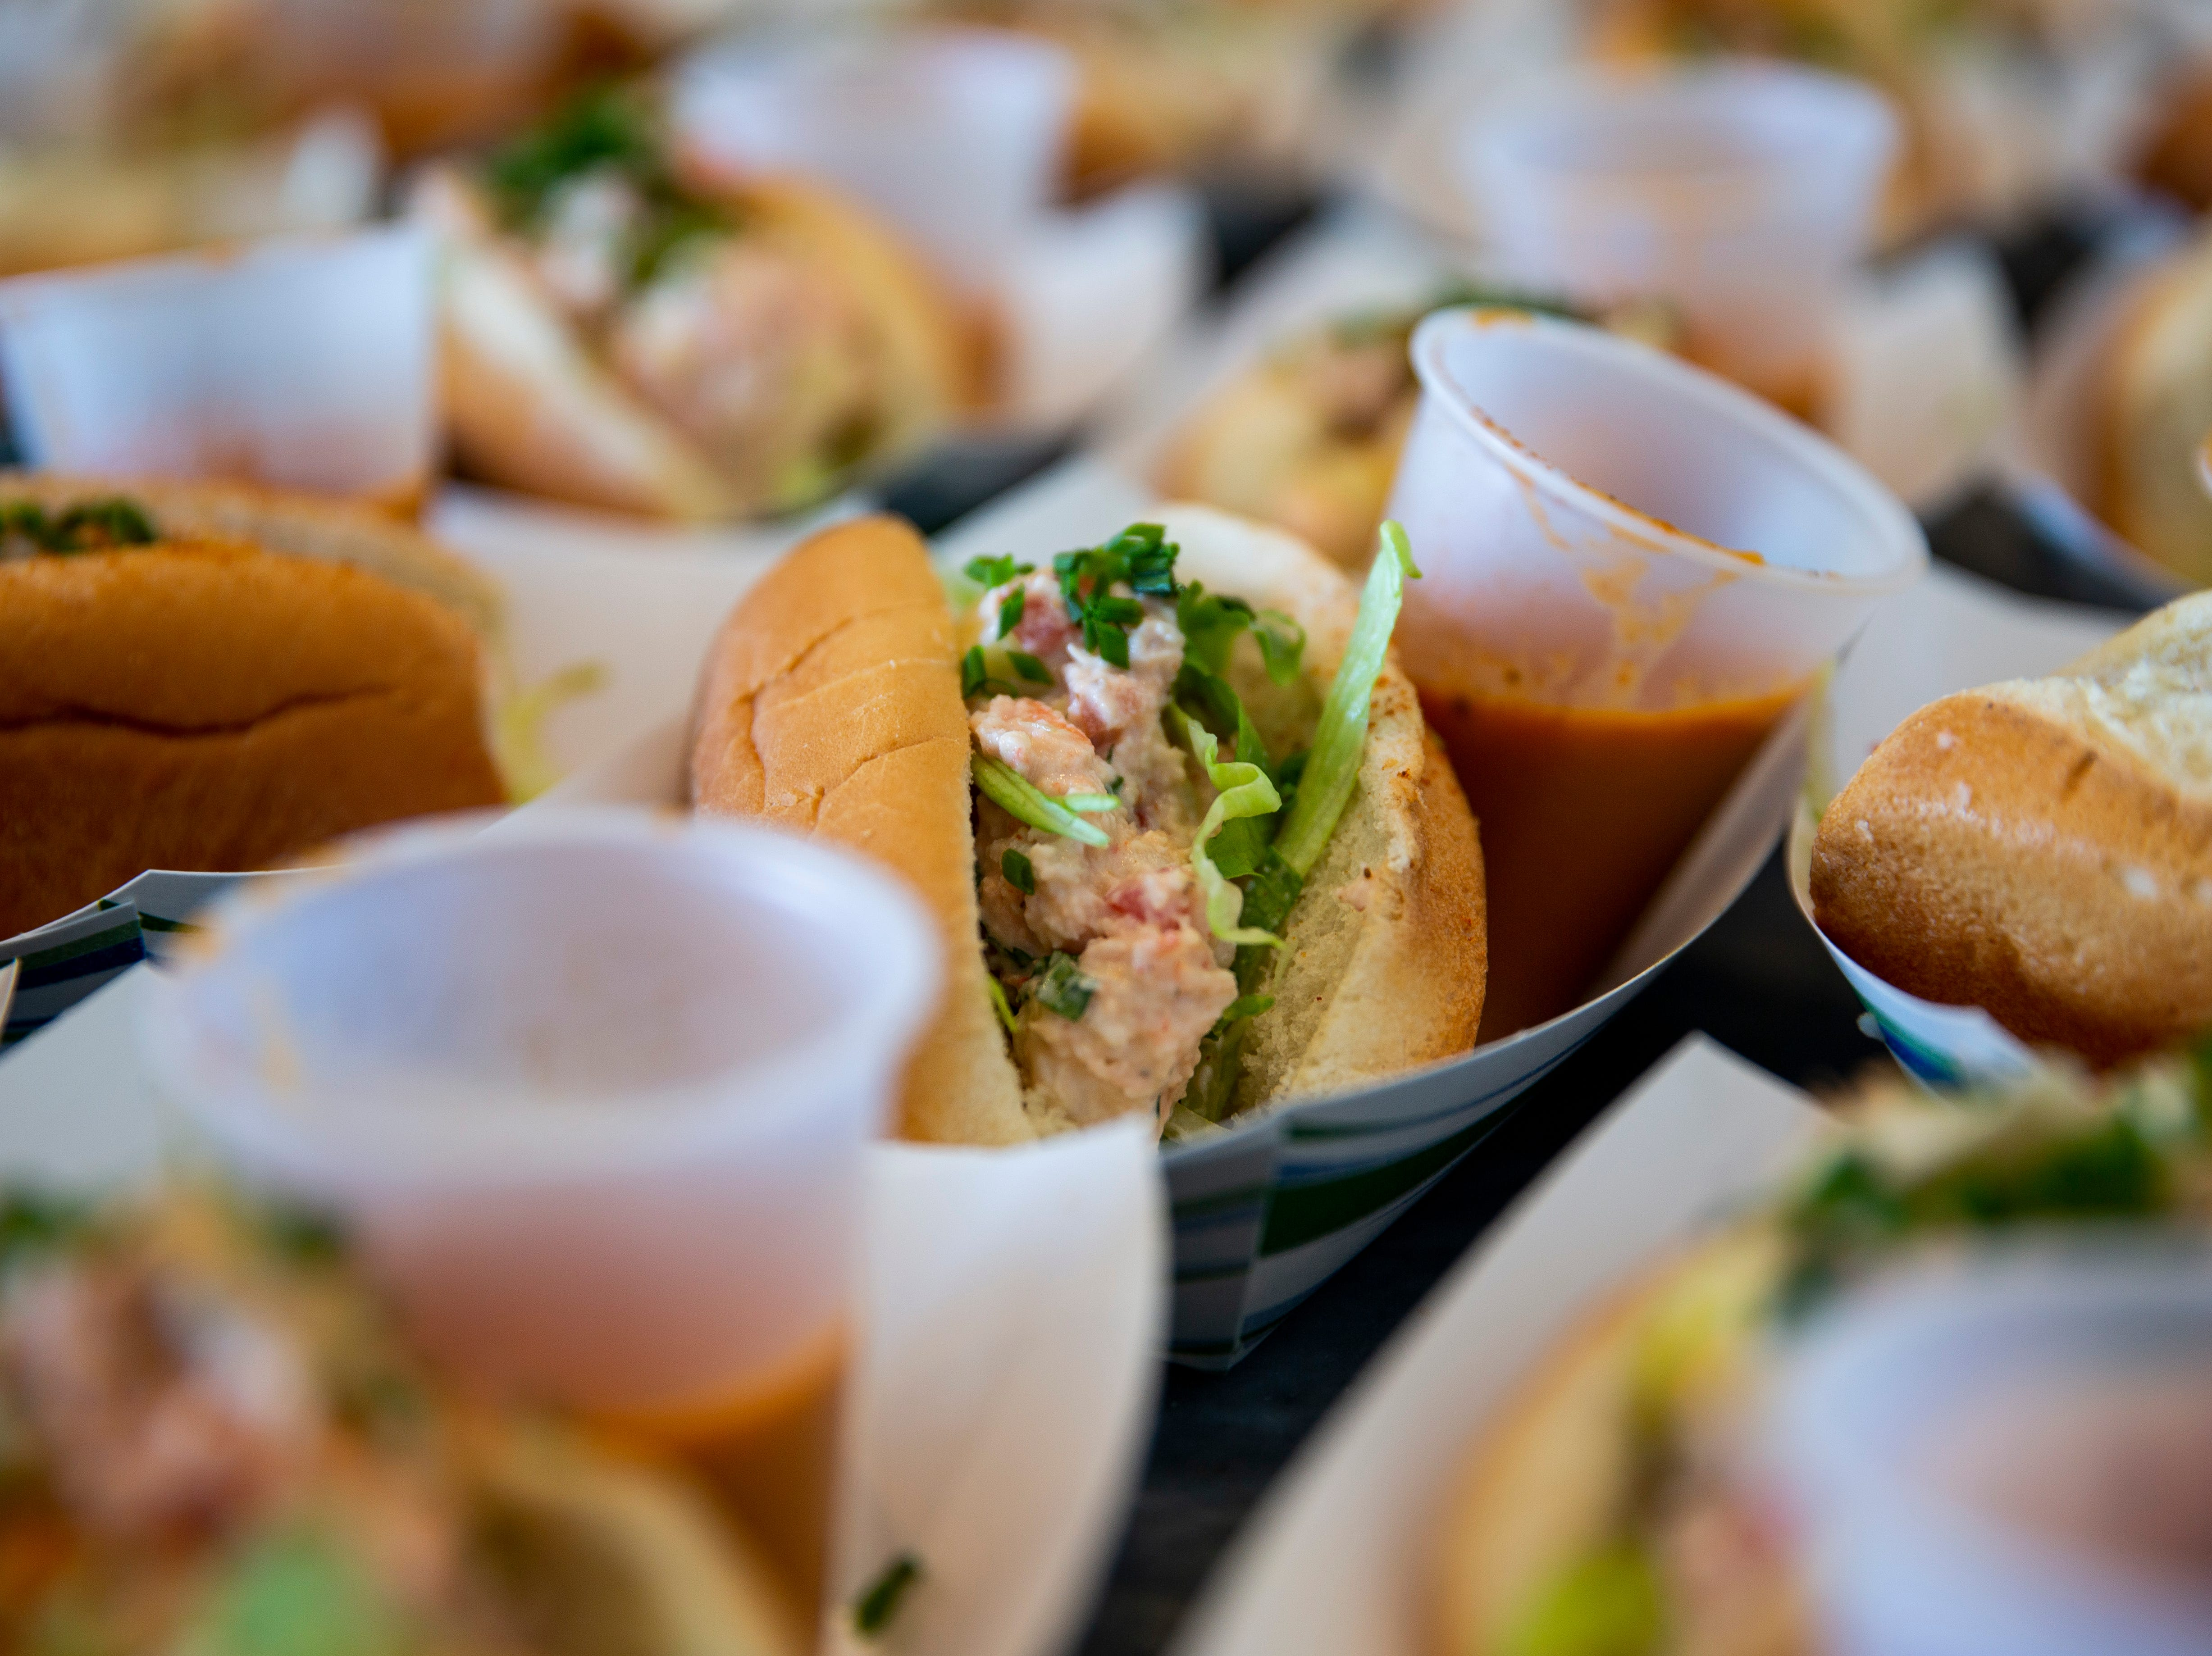 Lobster rolls prepared by David Nelson, executive chef at Timeless Restaurant, sit out for guests to eat during the 7th annual Kitchen Tour, hosted by the Naples Woman's Club in Naples on Wednesday, January 16, 2019.